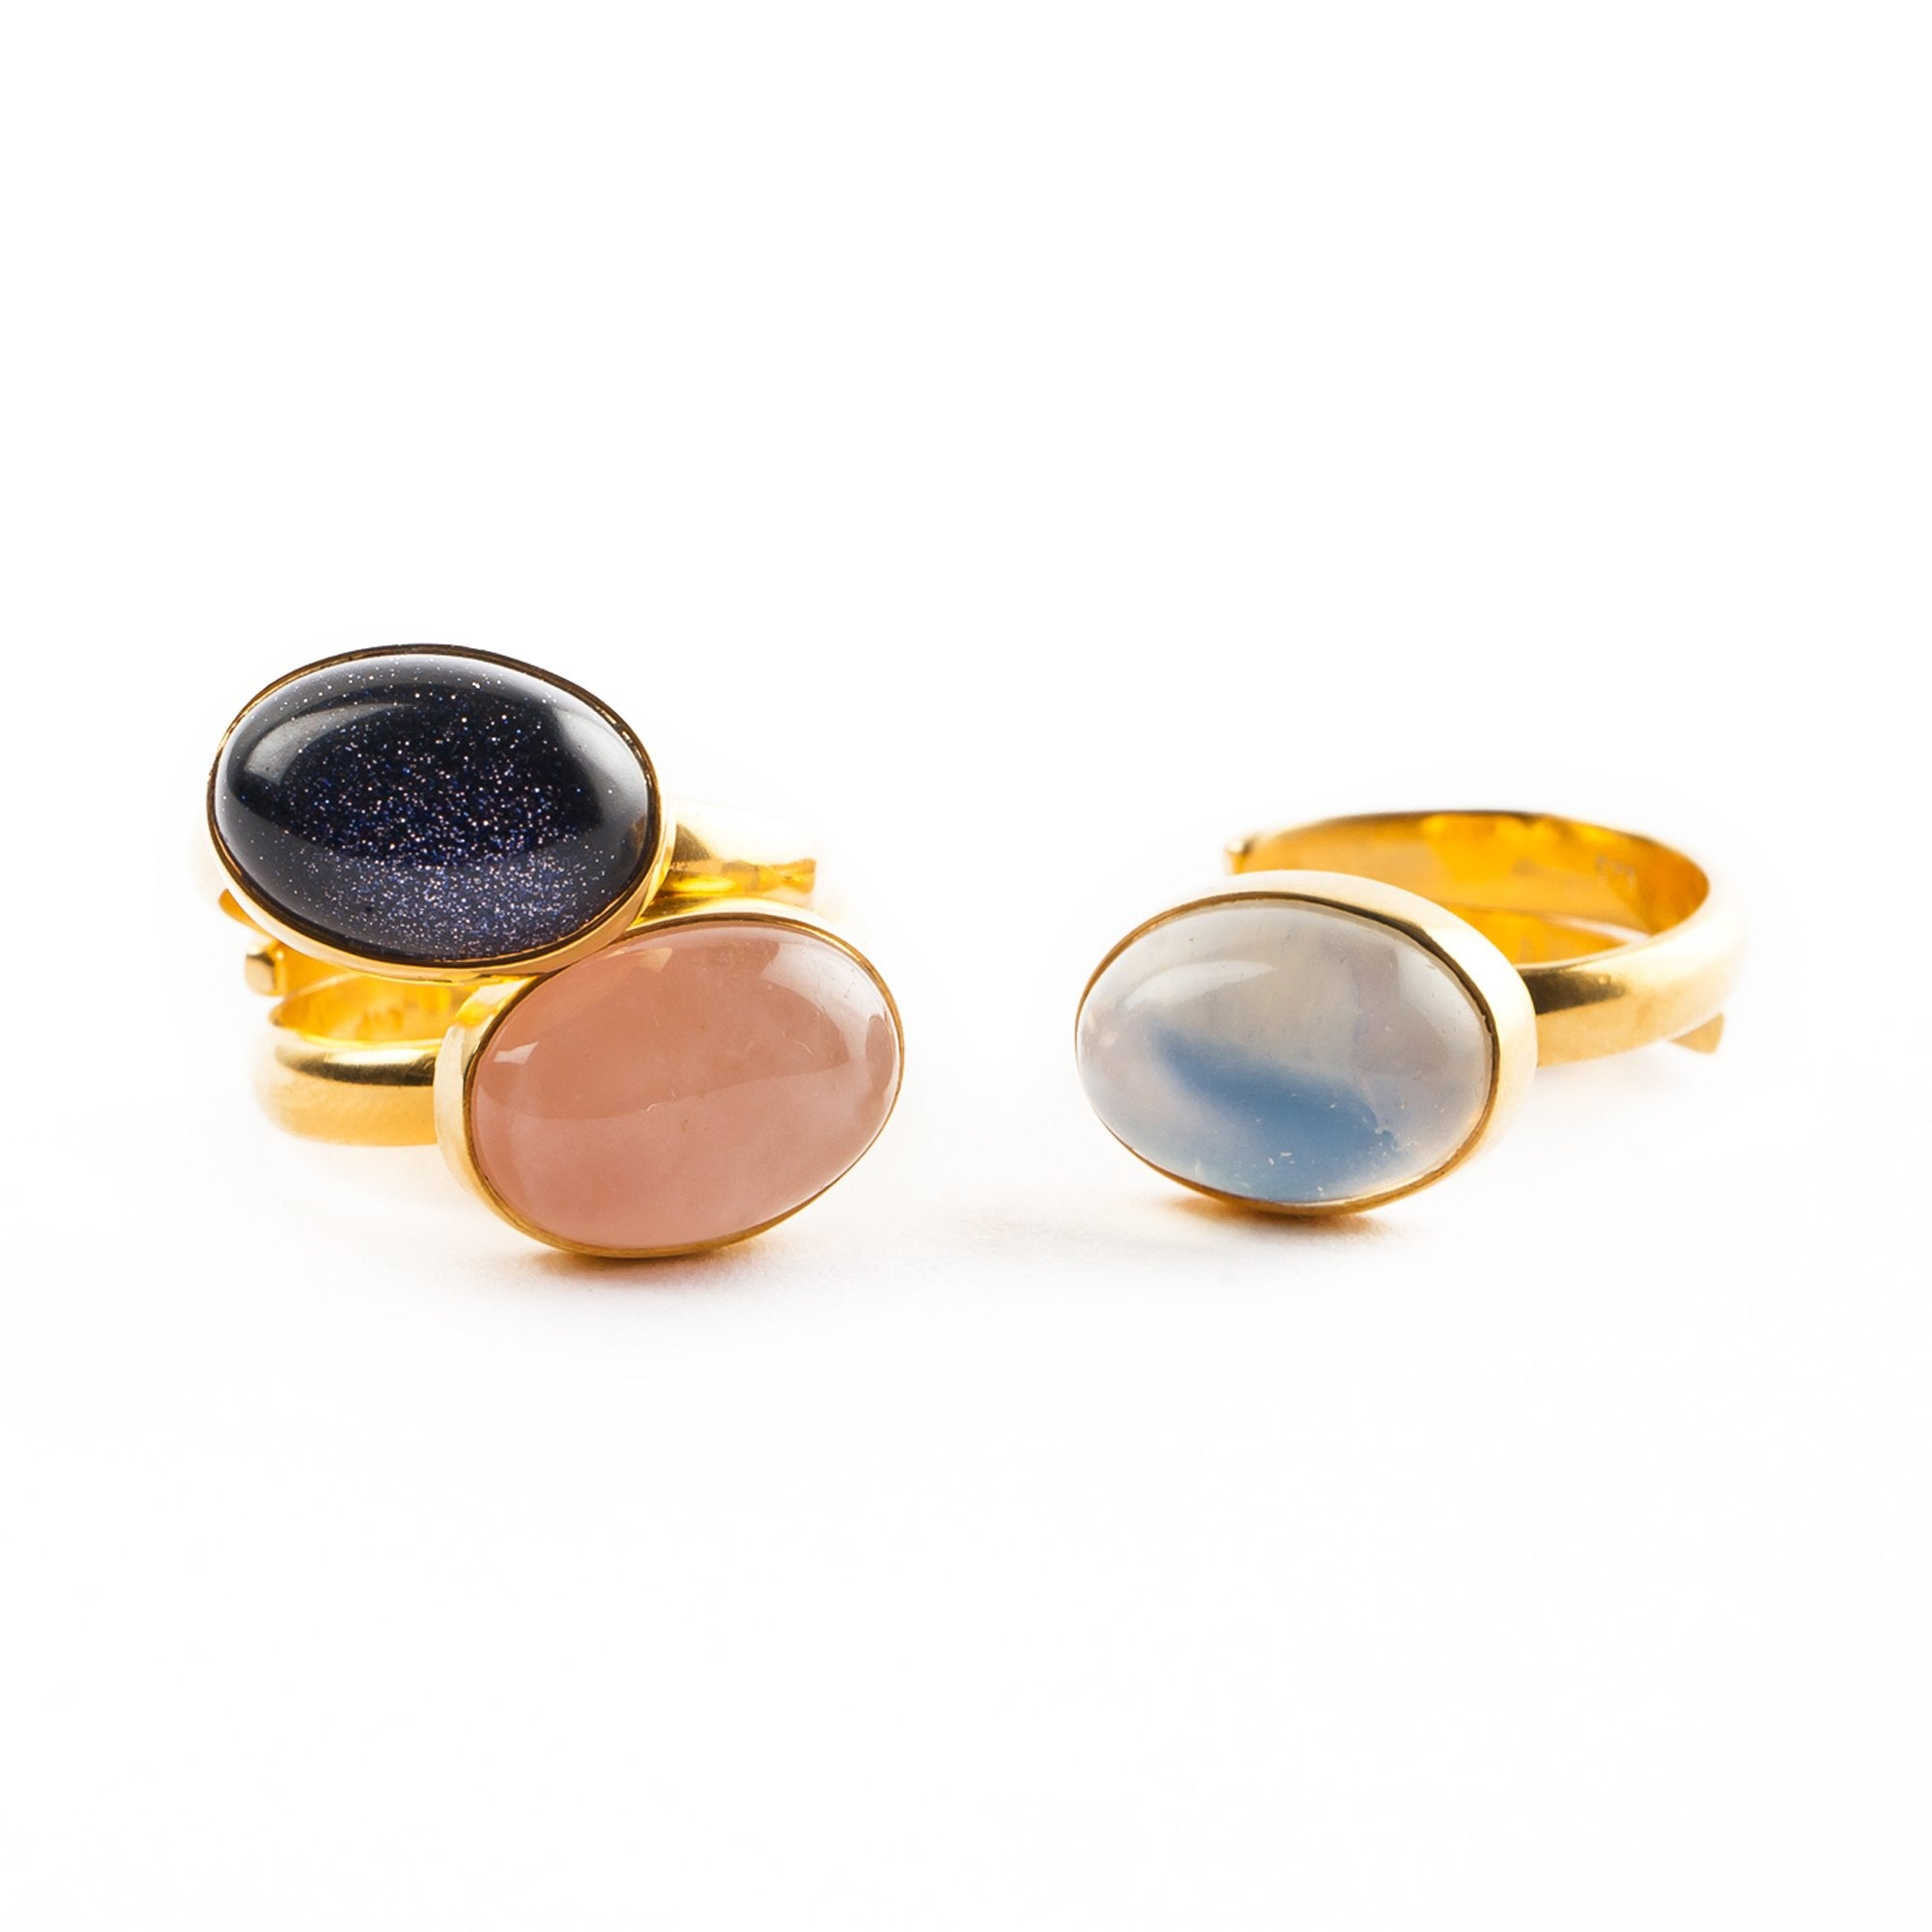 SVP Out of this World adjustable ring collection